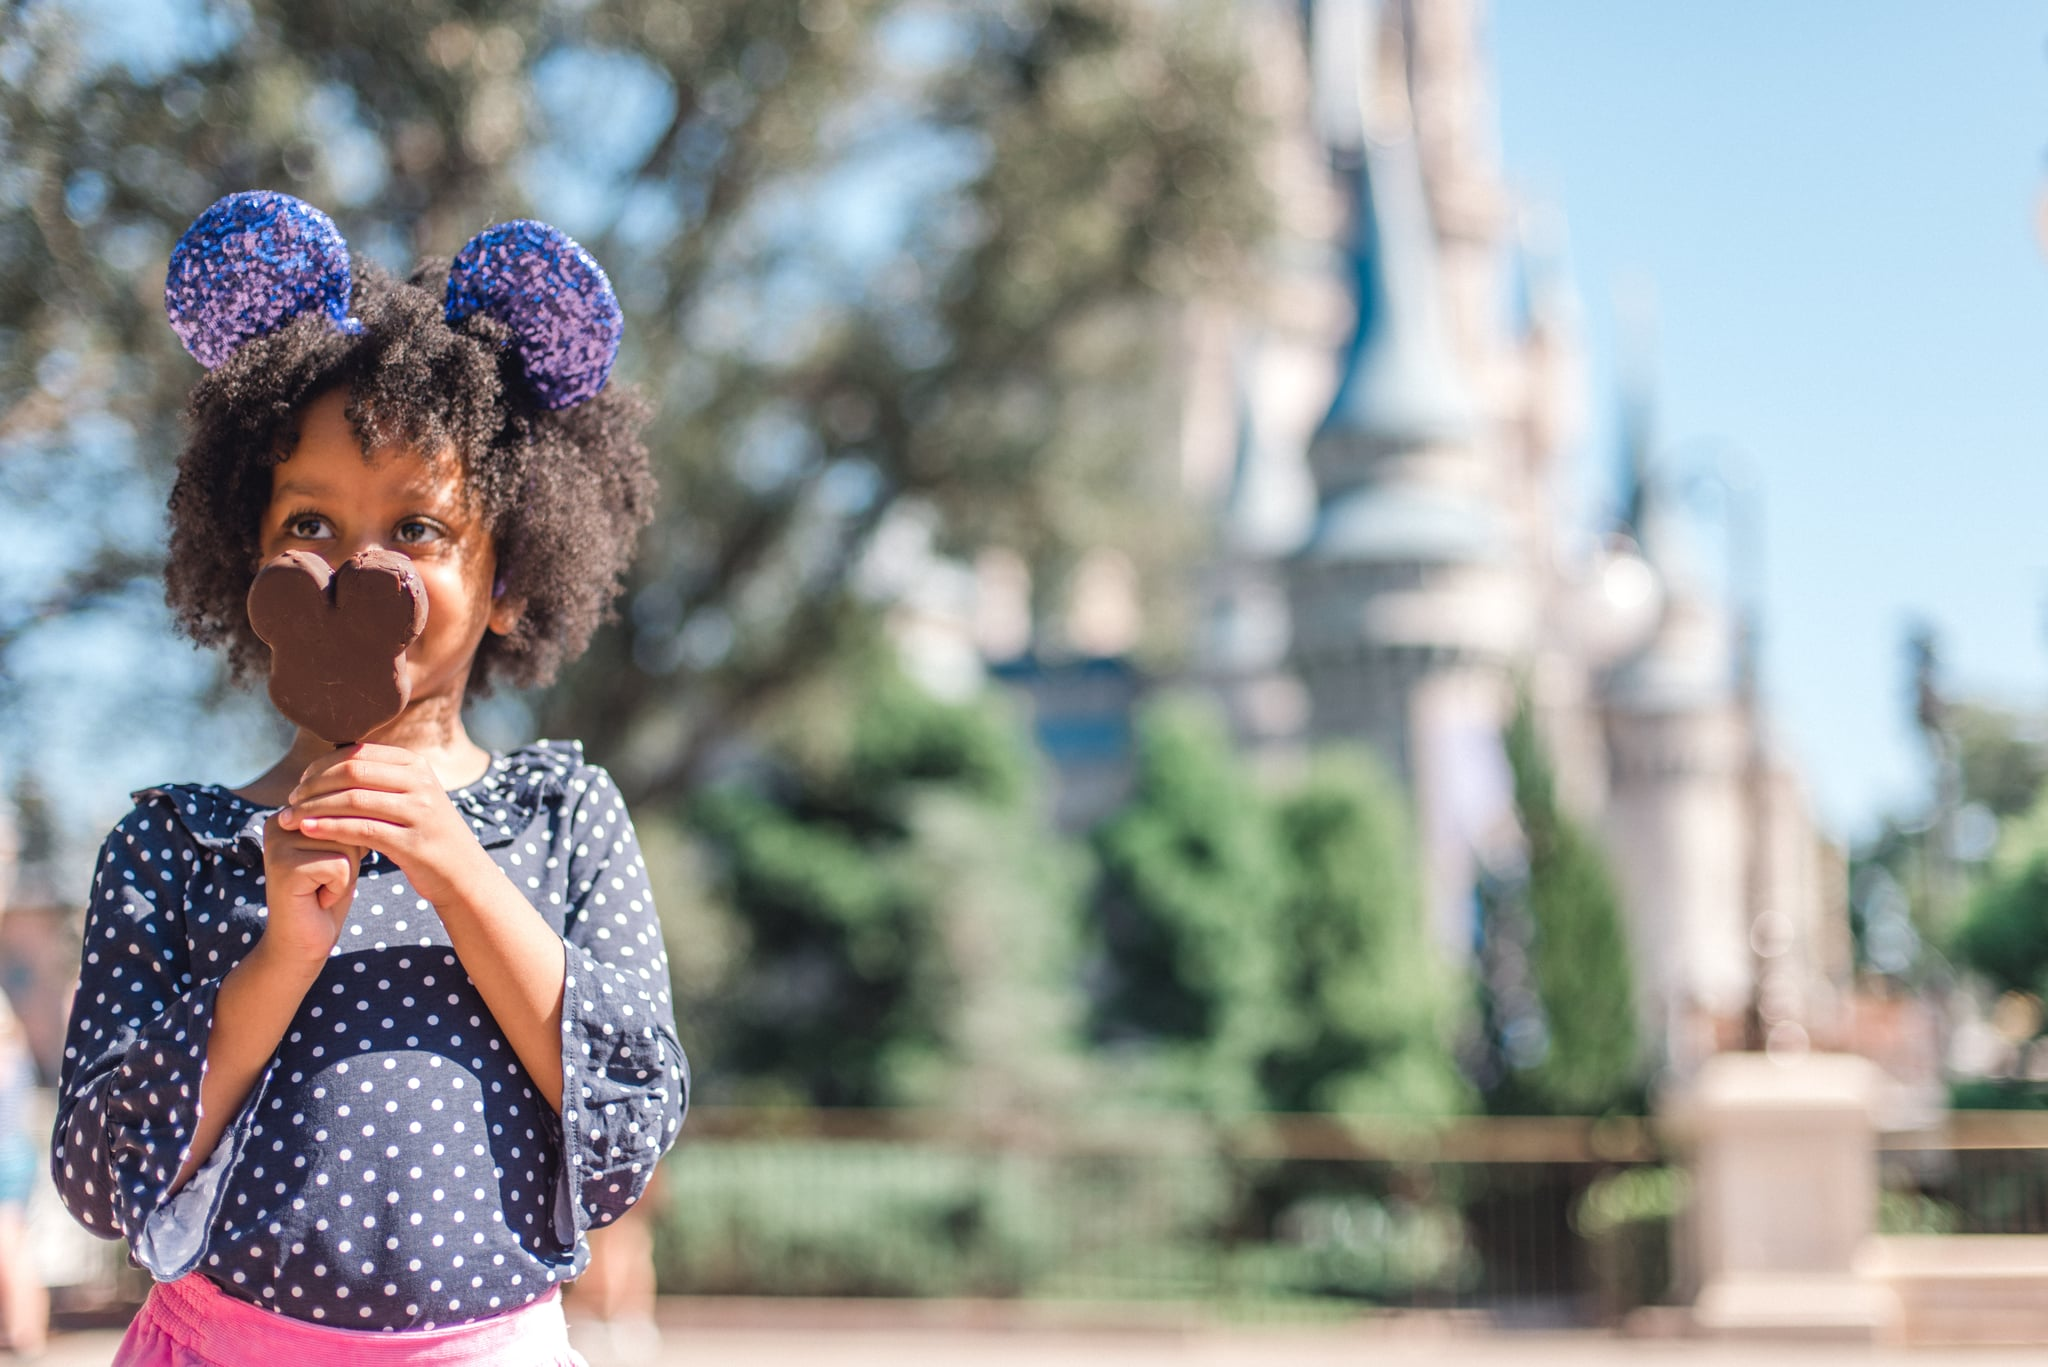 The magic is real for little ones as they visit Magic Kingdom Park for the very first time. From that first glimpse of Cinderella Castle to hugs with favourite Disney characters to exploring attractions and sampling Mickey Mouse-shaped treats, visiting Walt Disney World Resort in Lake Buena Vista, Fla., is a holiday of choice for young families. (Claire Celeste, photographer)